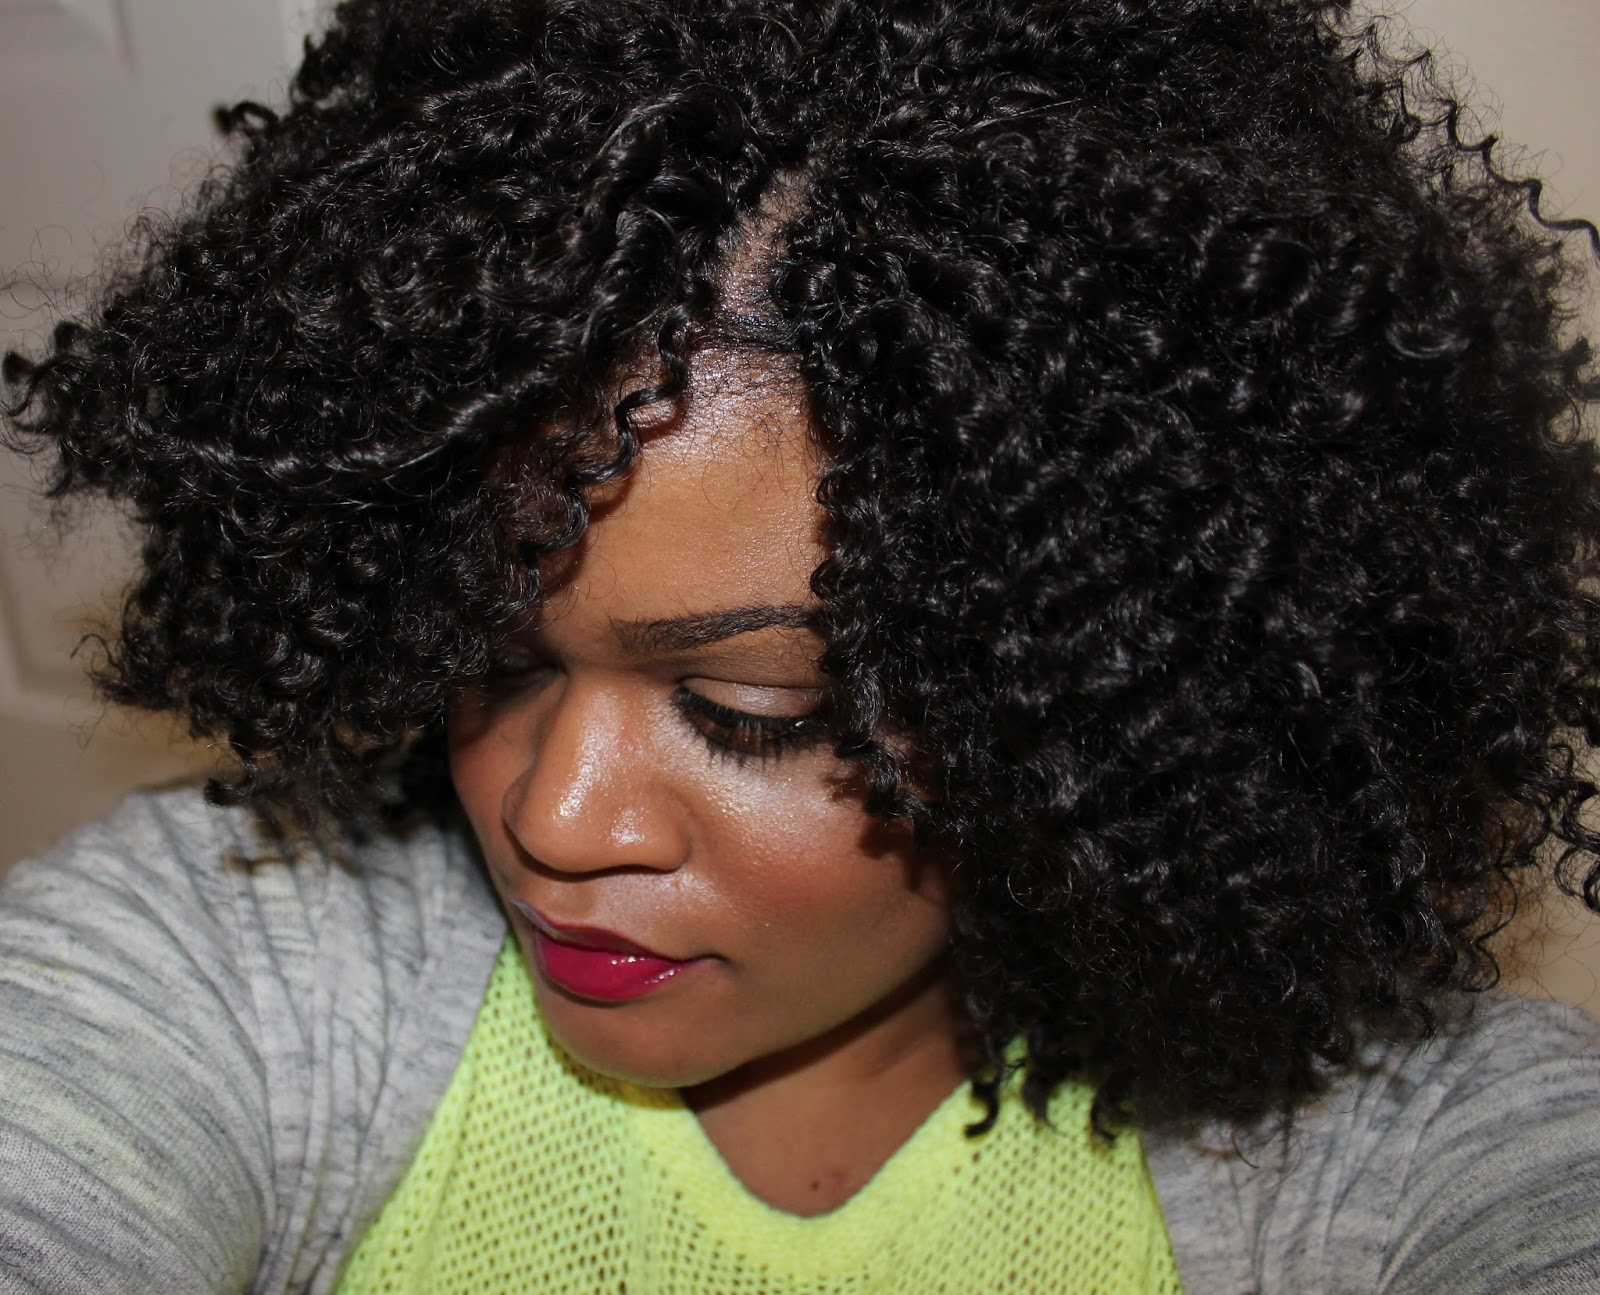 Crochet Hair At Night : FabEllis: Natural Hair What Are Crochet Braids?